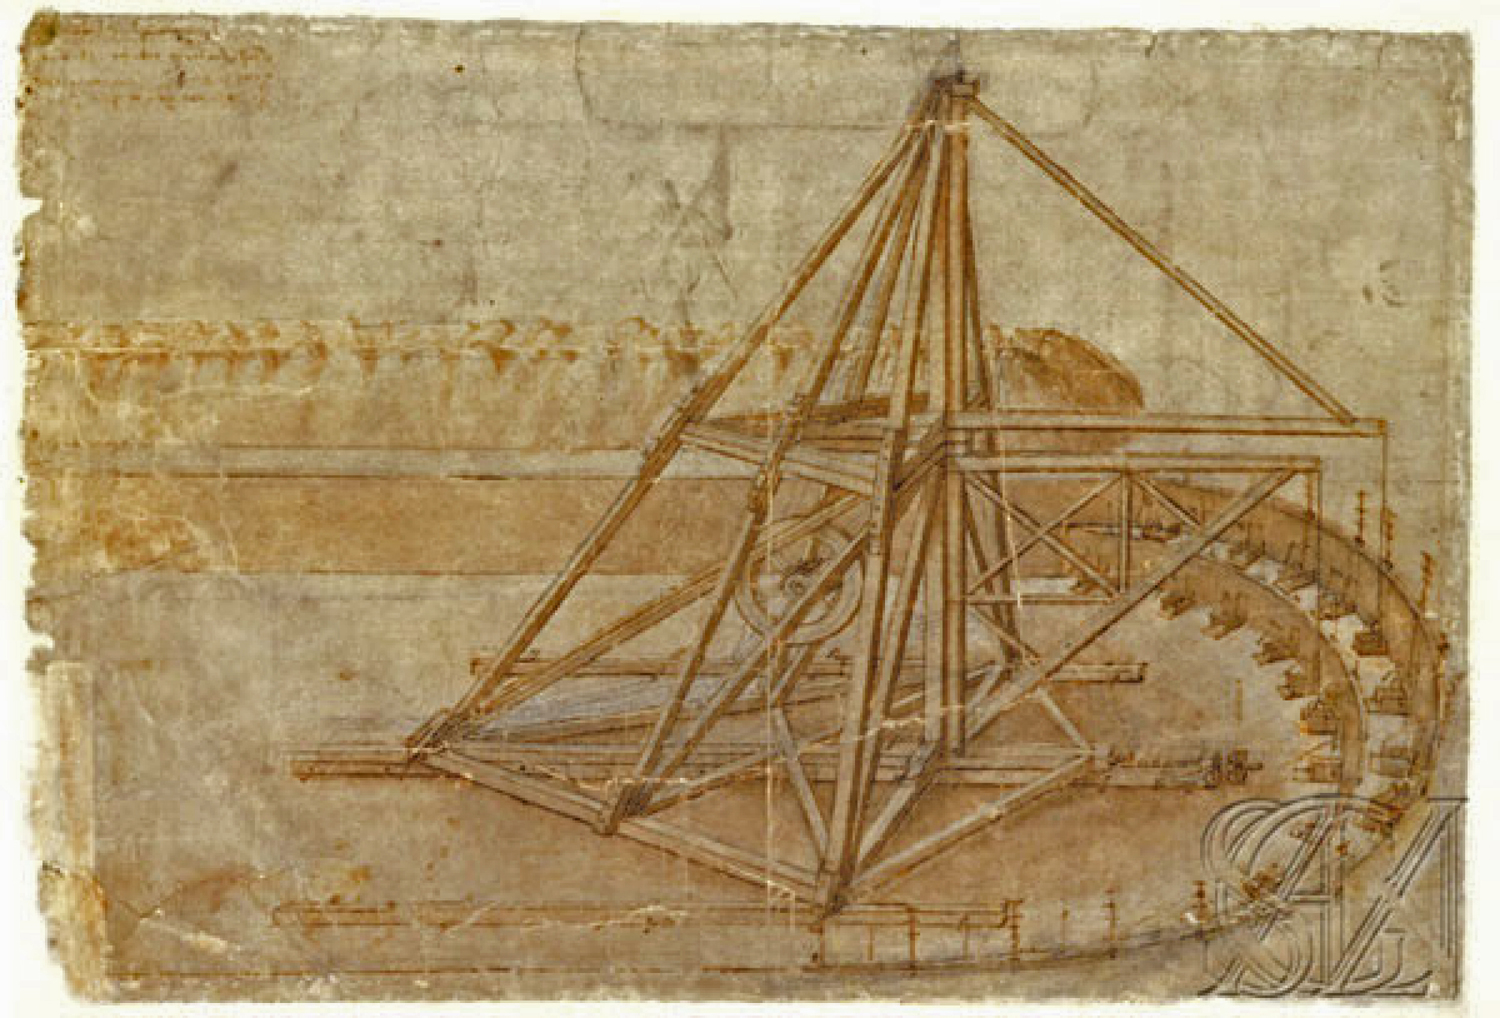 CODEX ATLANTICUS, DA VINCI